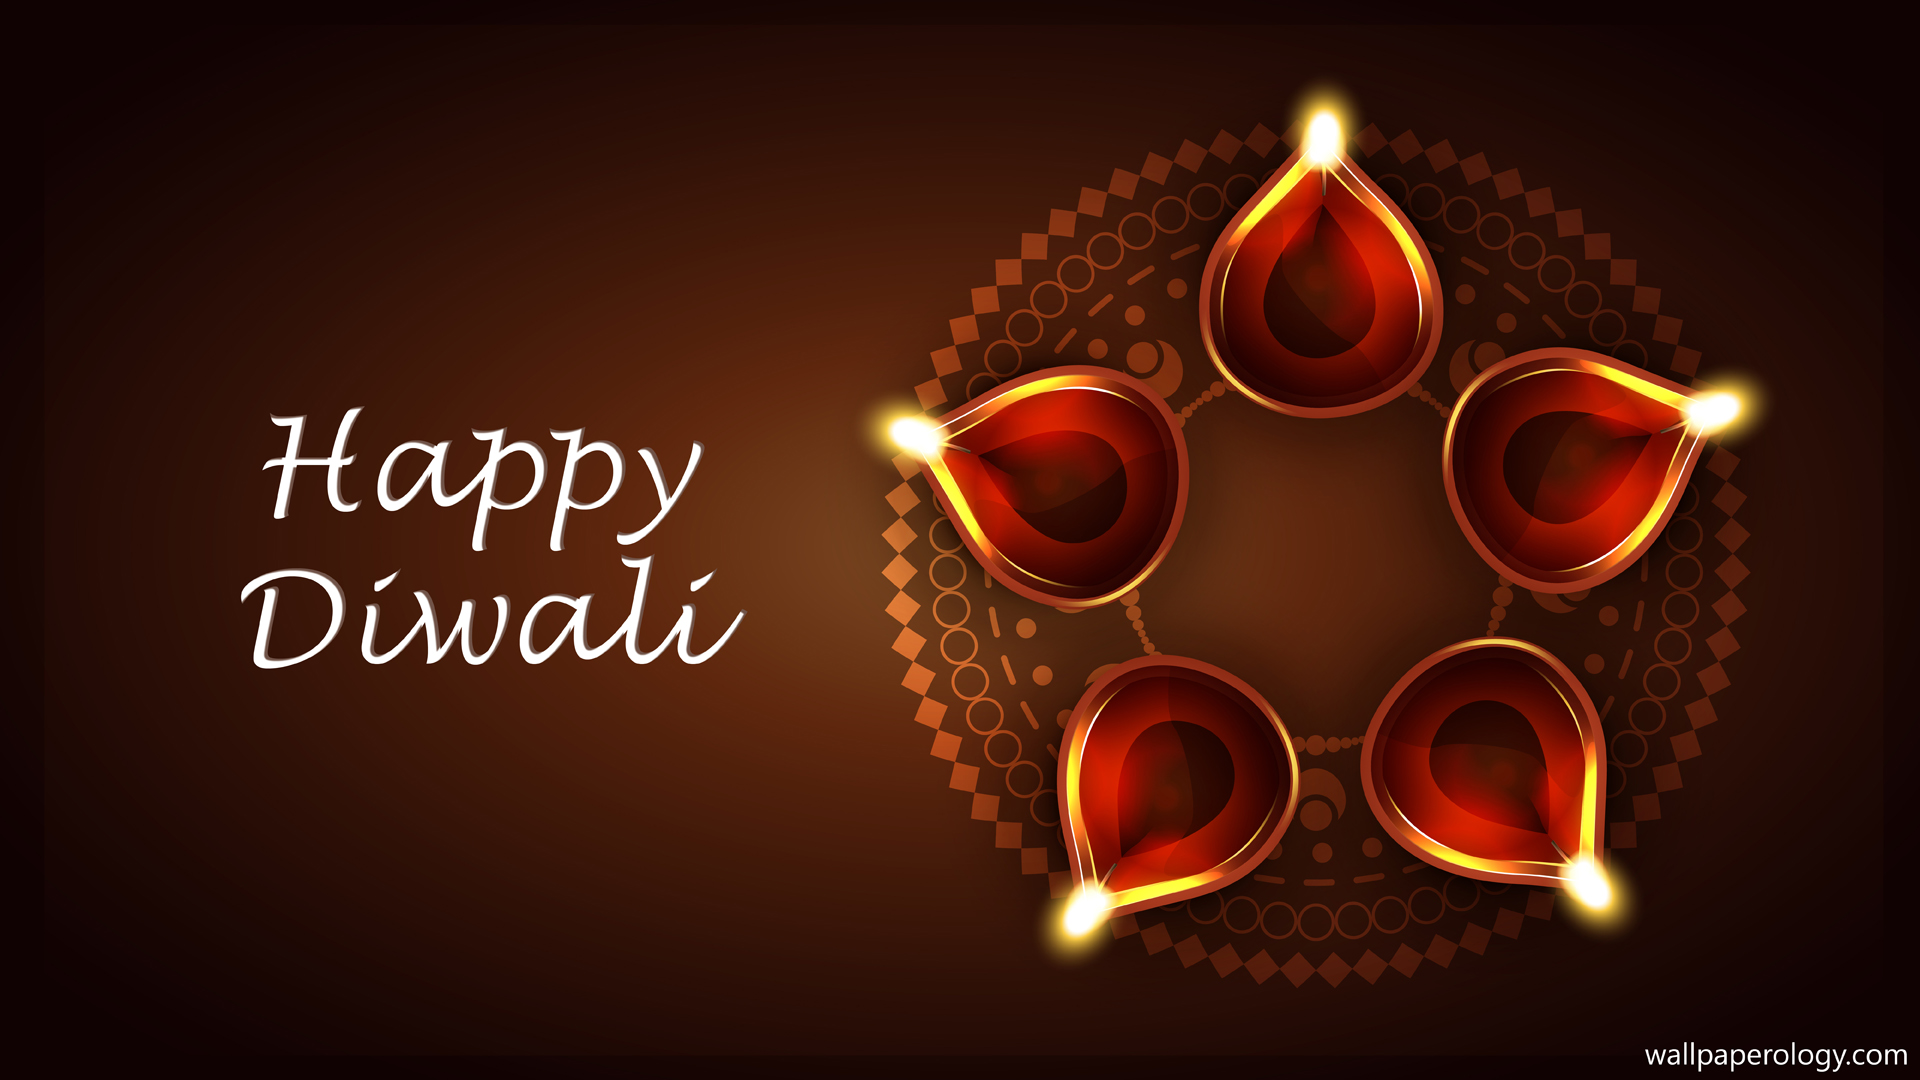 Happy diwali backgrounds wallpapers